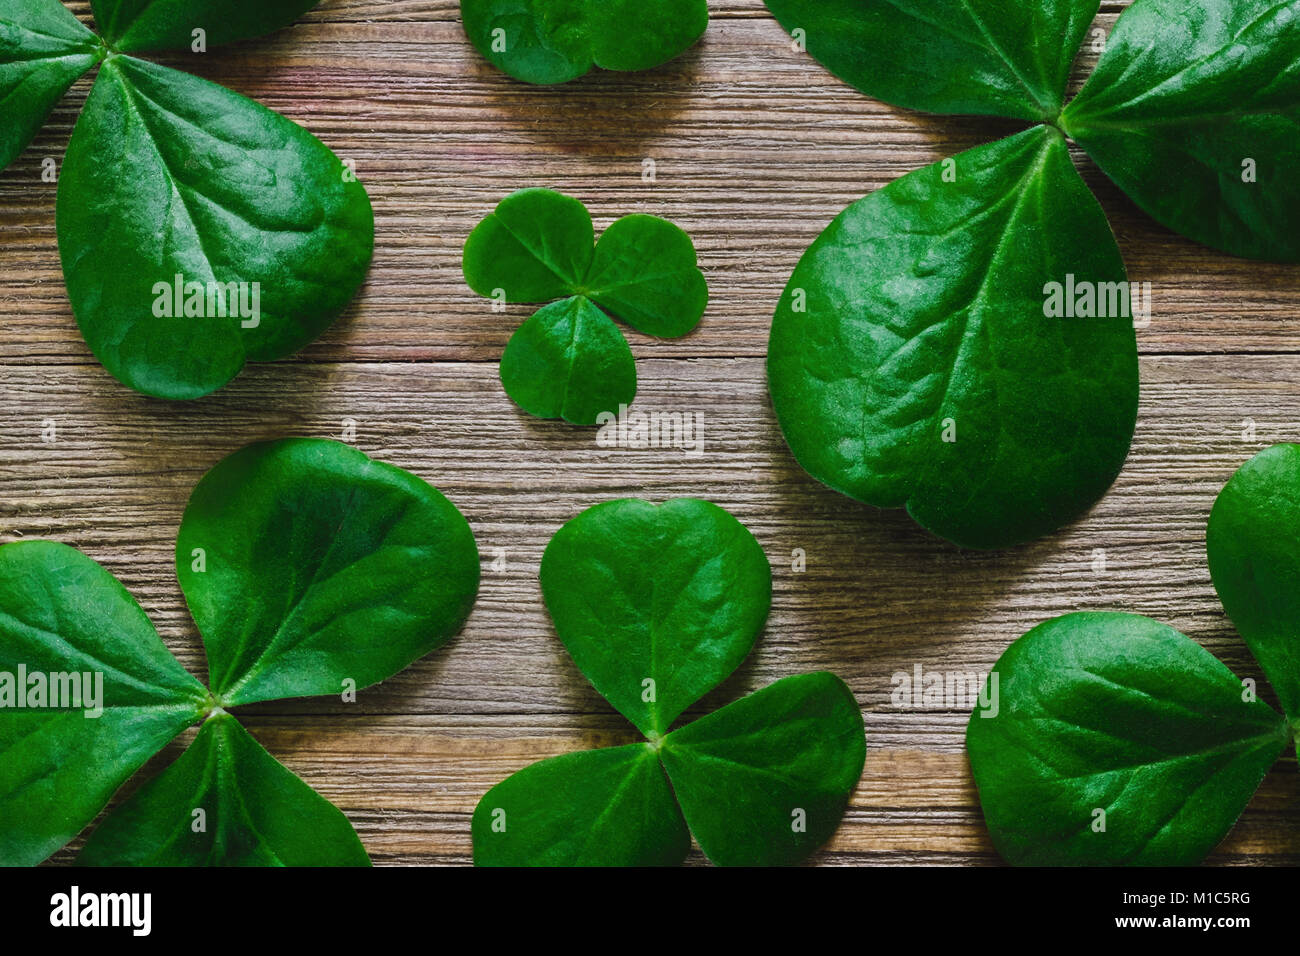 Shamrocks Arranged on Rustic Wooden Table - Stock Image